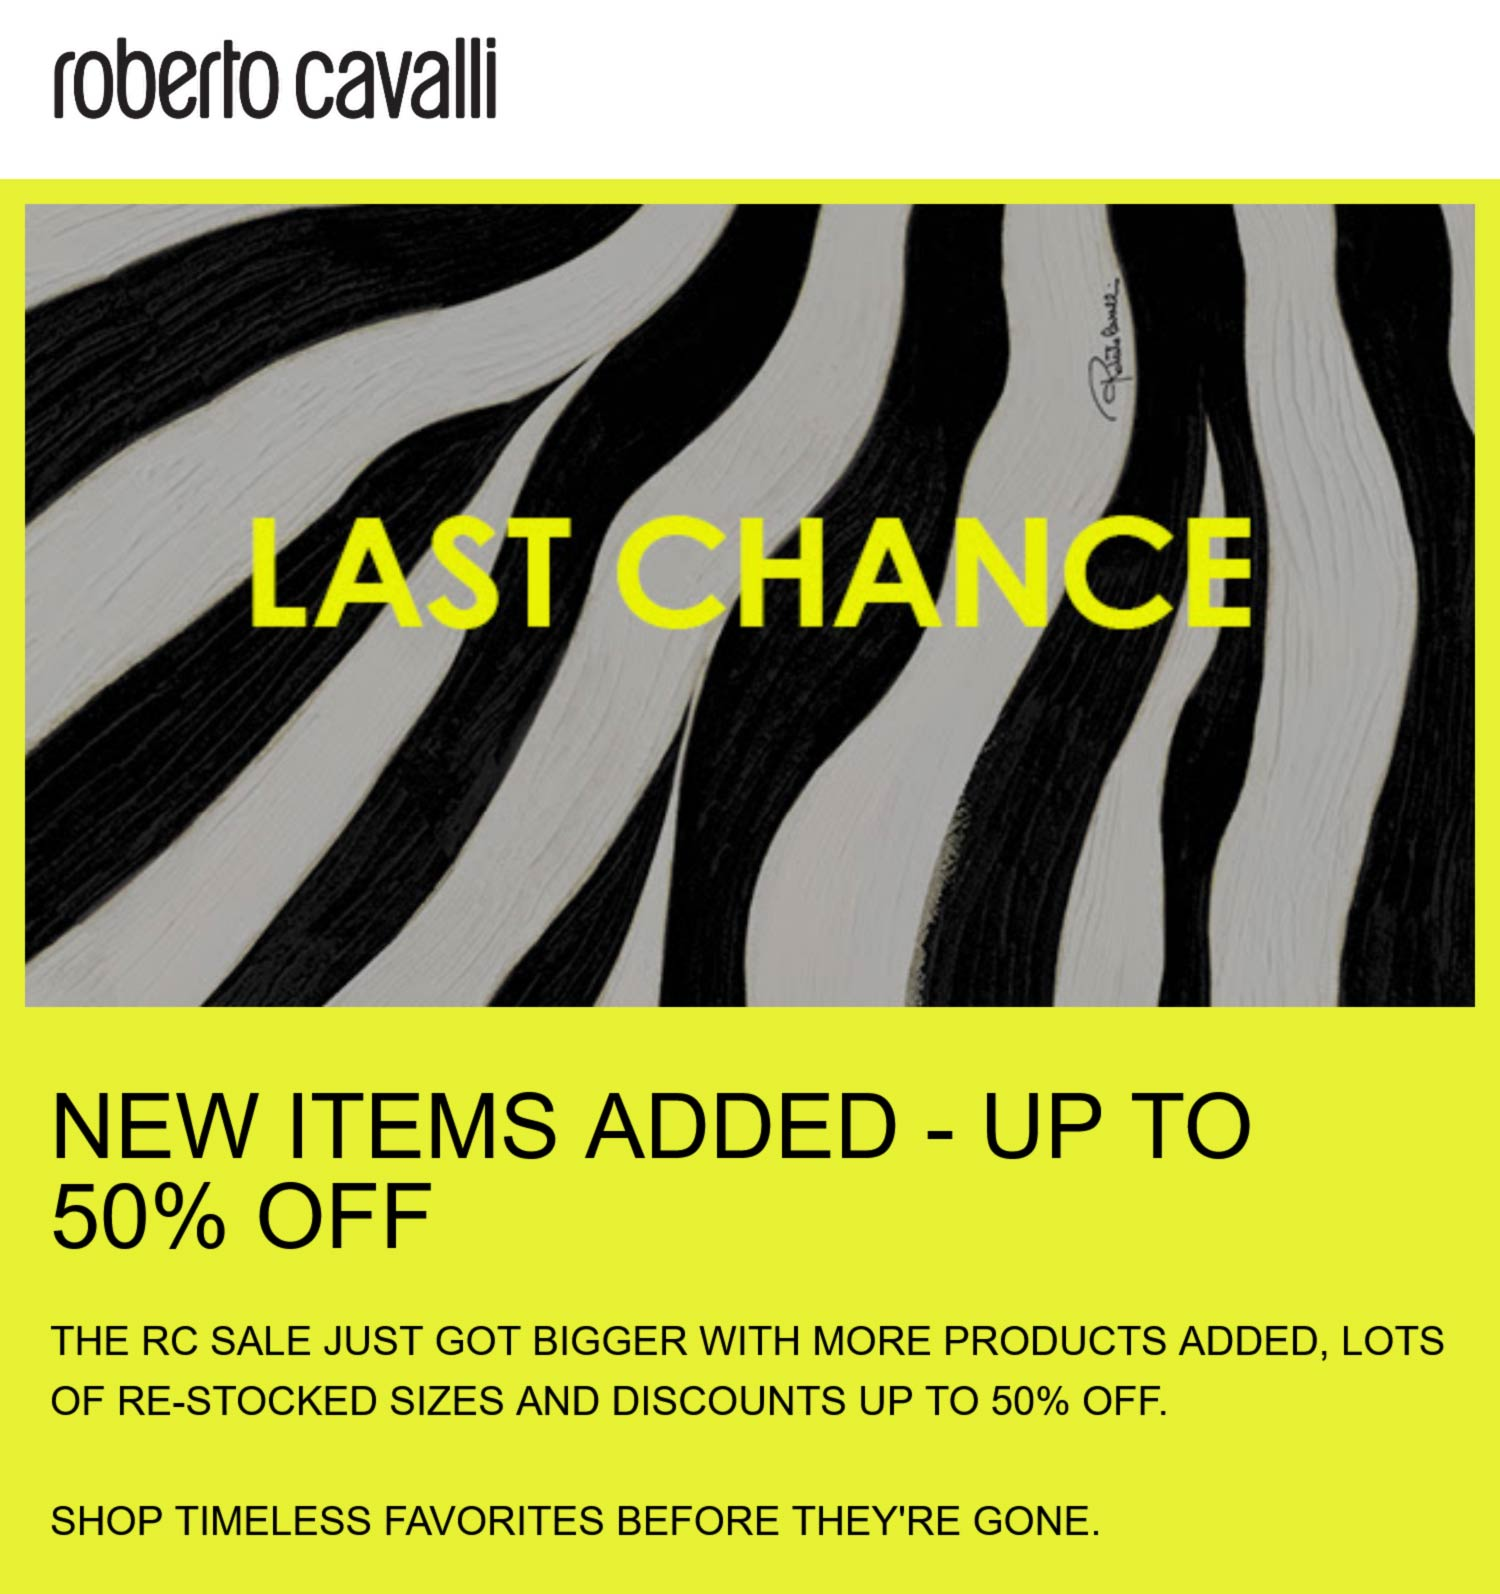 Roberto Cavalli stores Coupon  50% off going on at Roberto Cavalli #robertocavalli